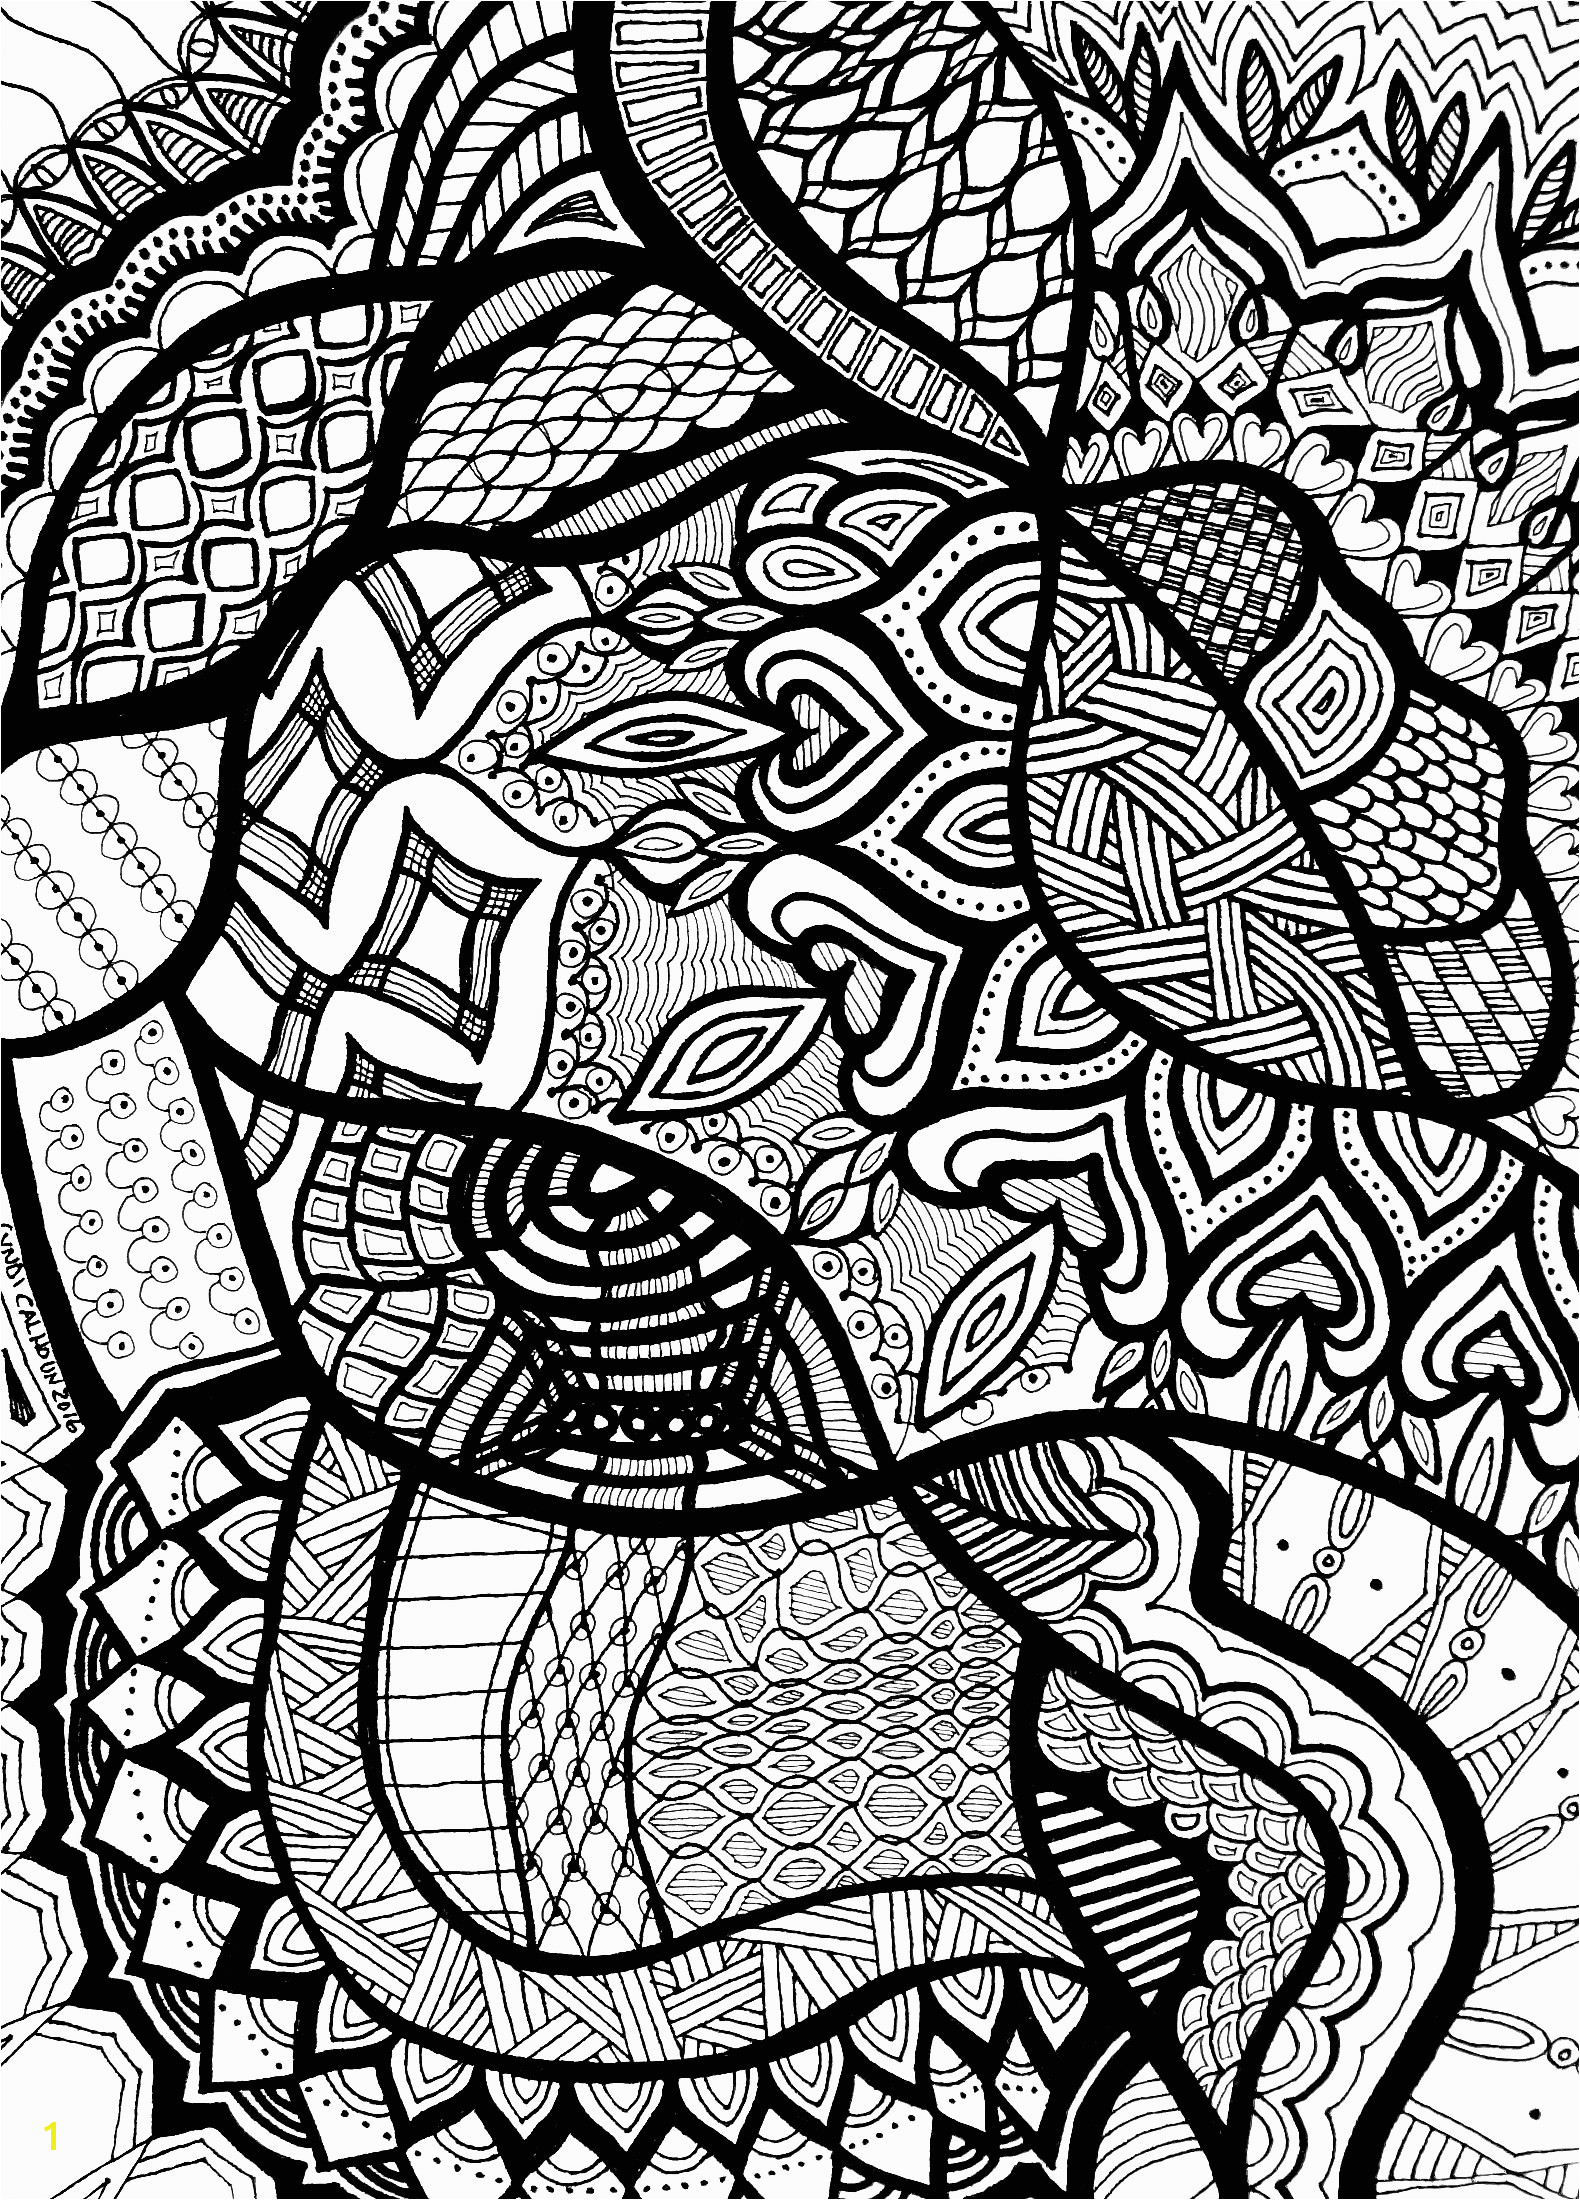 printable mosaic coloring book pages Interesting Ideas Printable Mosaic Coloring Pages Download